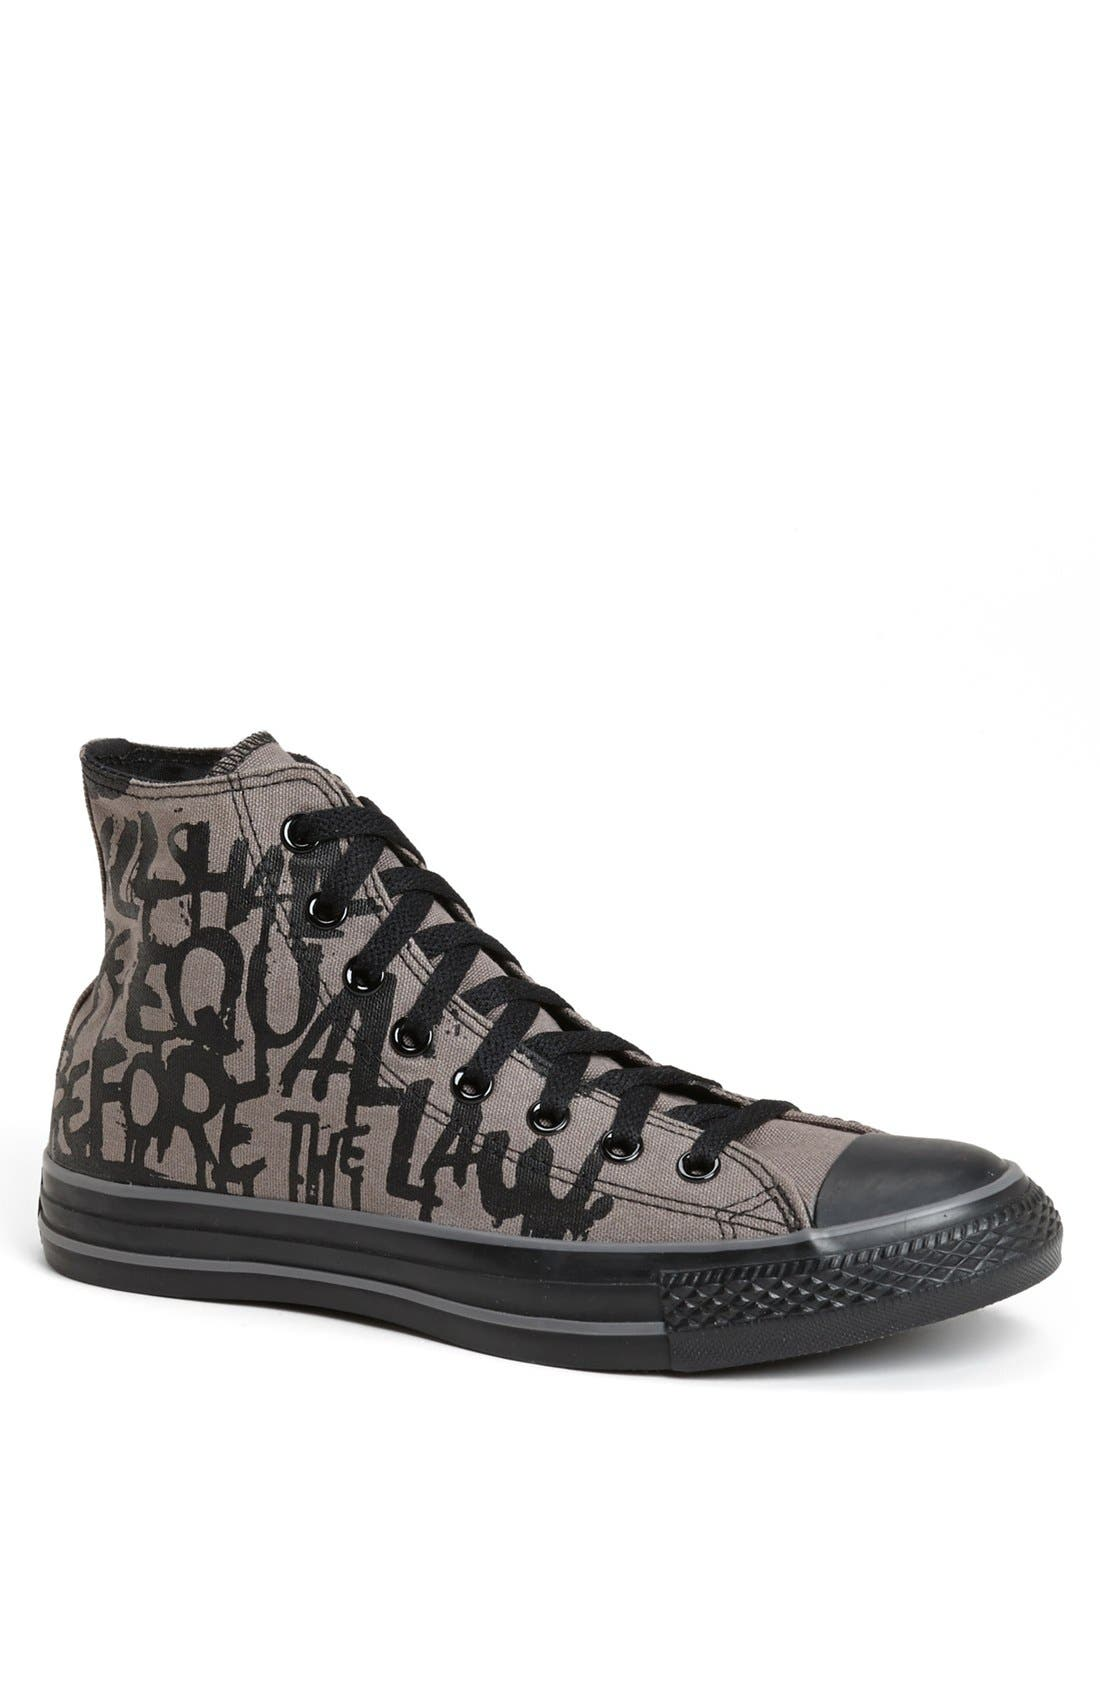 Alternate Image 1 Selected - Converse Chuck Taylor® All Star® High Sneaker (Men)